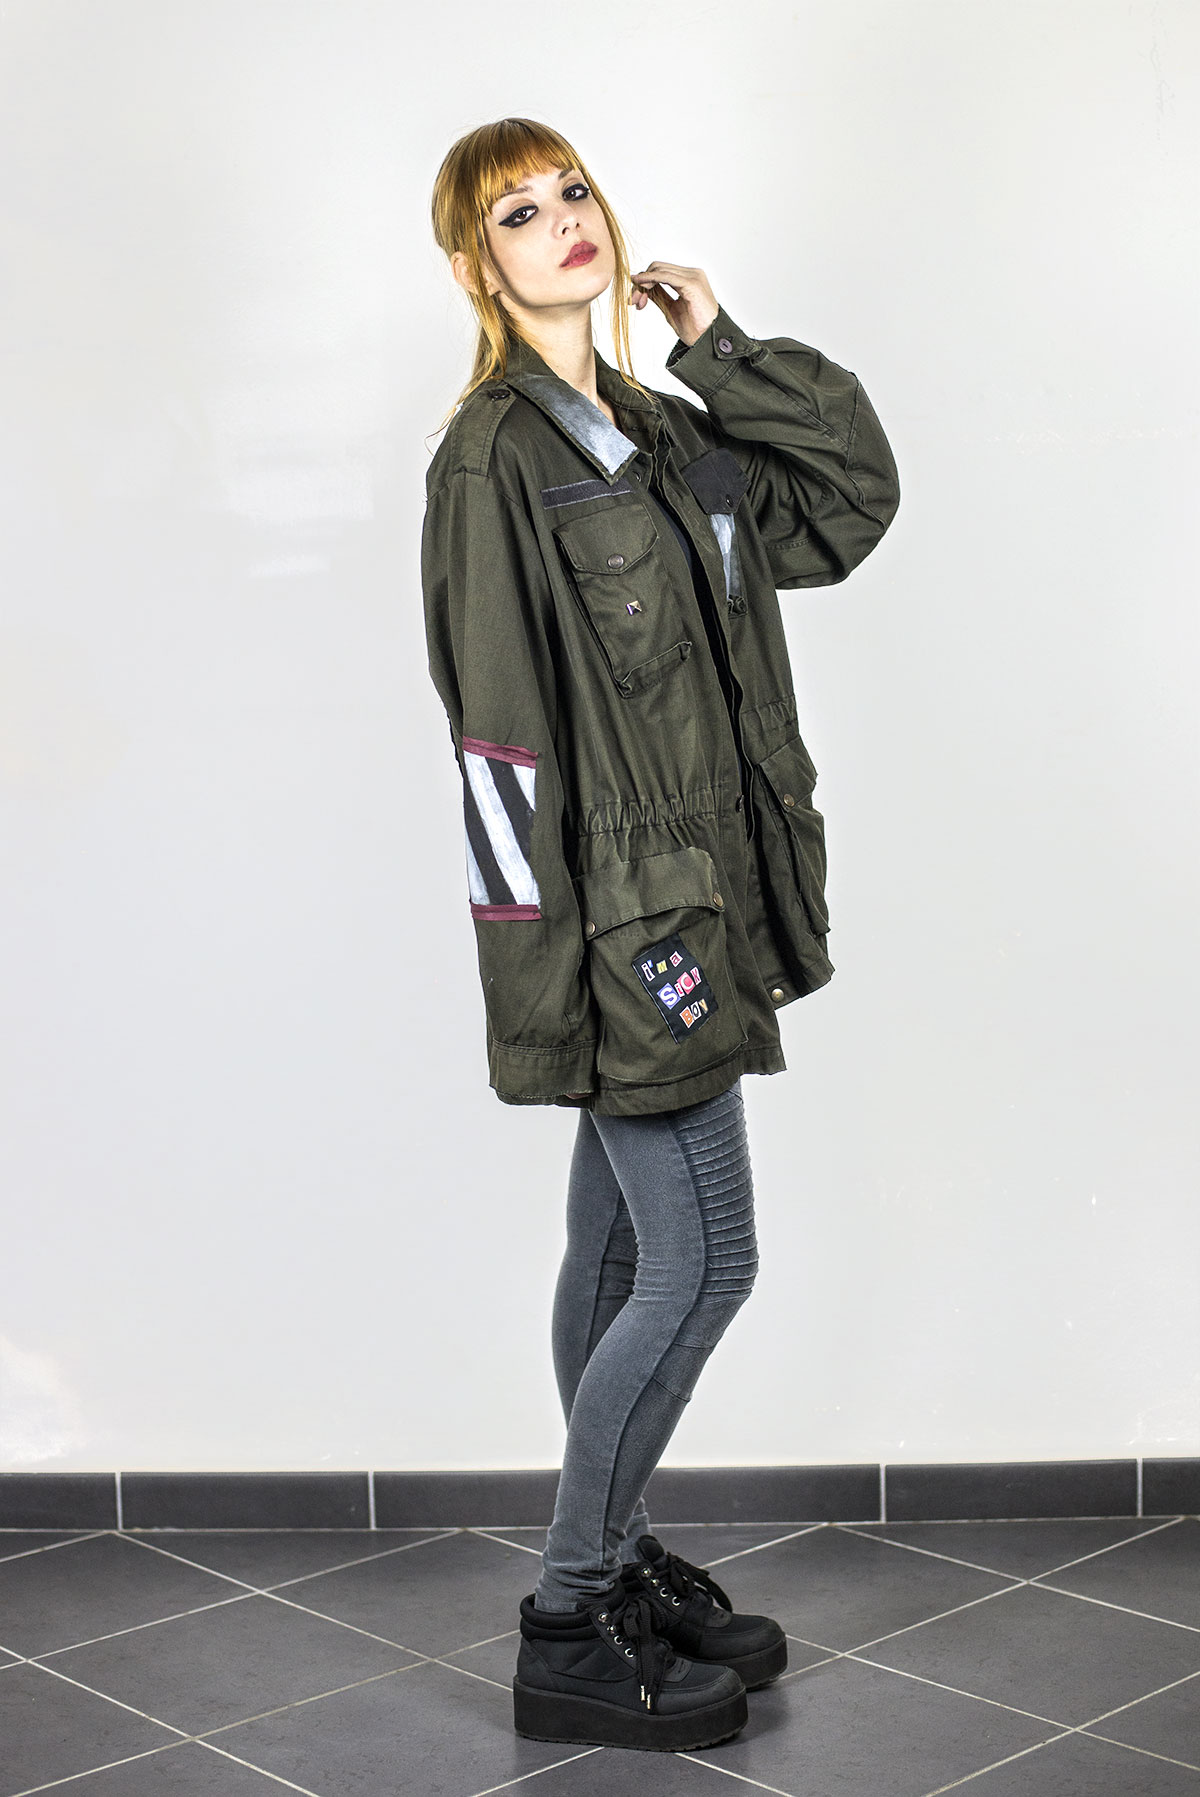 rebelsmarket_fulmineo_remade_military_jacket_jackets_5.jpg